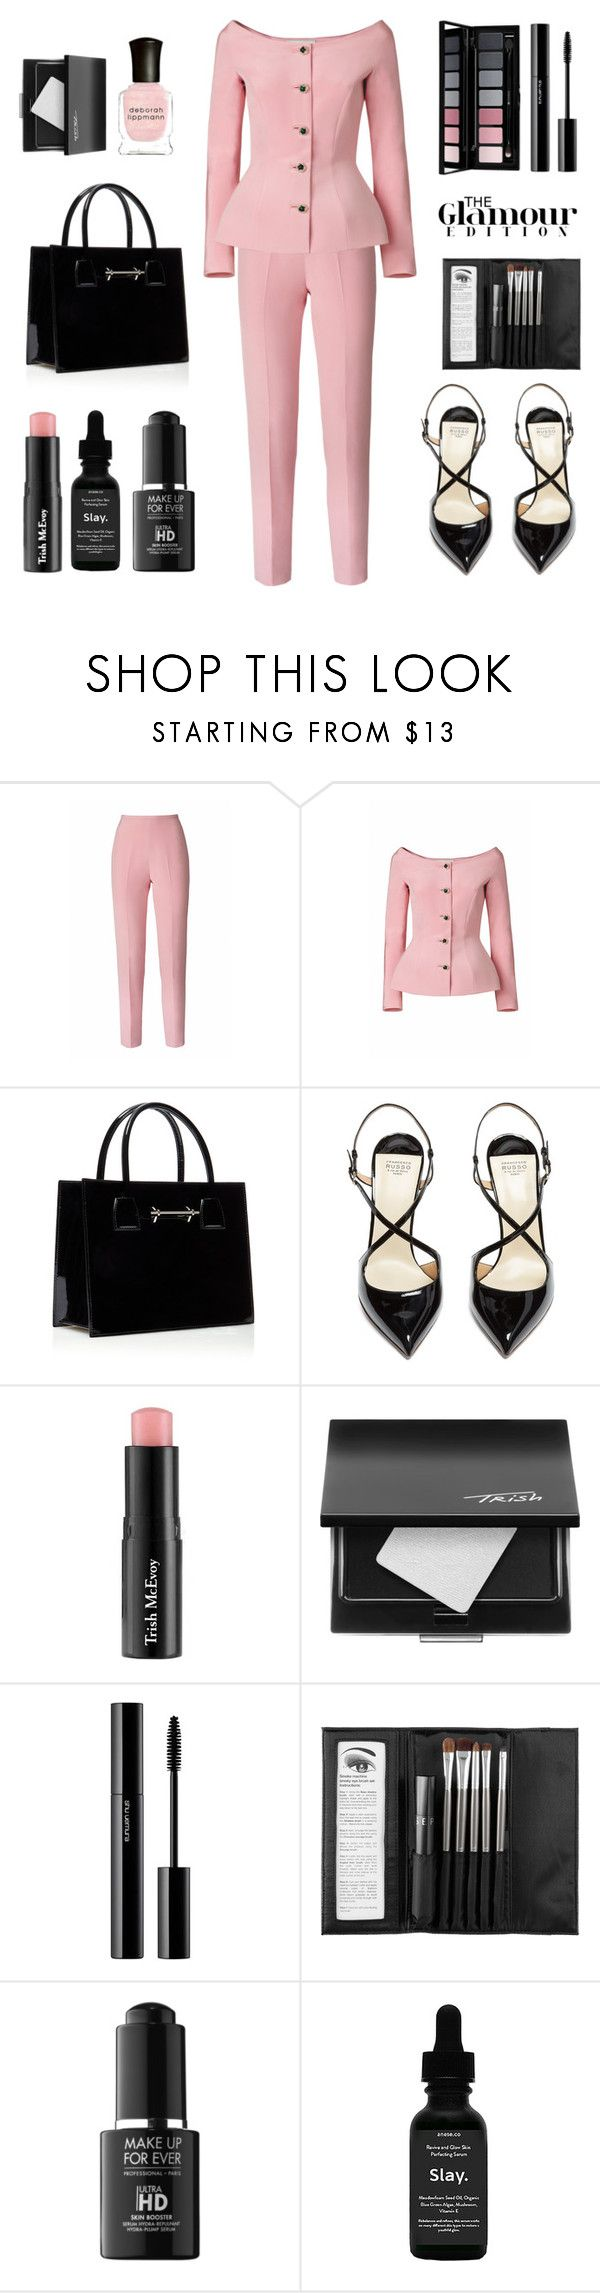 """""""Untitled #683"""" by tenindvr ❤ liked on Polyvore featuring Esme Vie, M2Malletier, Francesco Russo, Trish McEvoy, shu uemura, Sephora Collection, MAKE UP FOR EVER, Anese and Deborah Lippmann"""